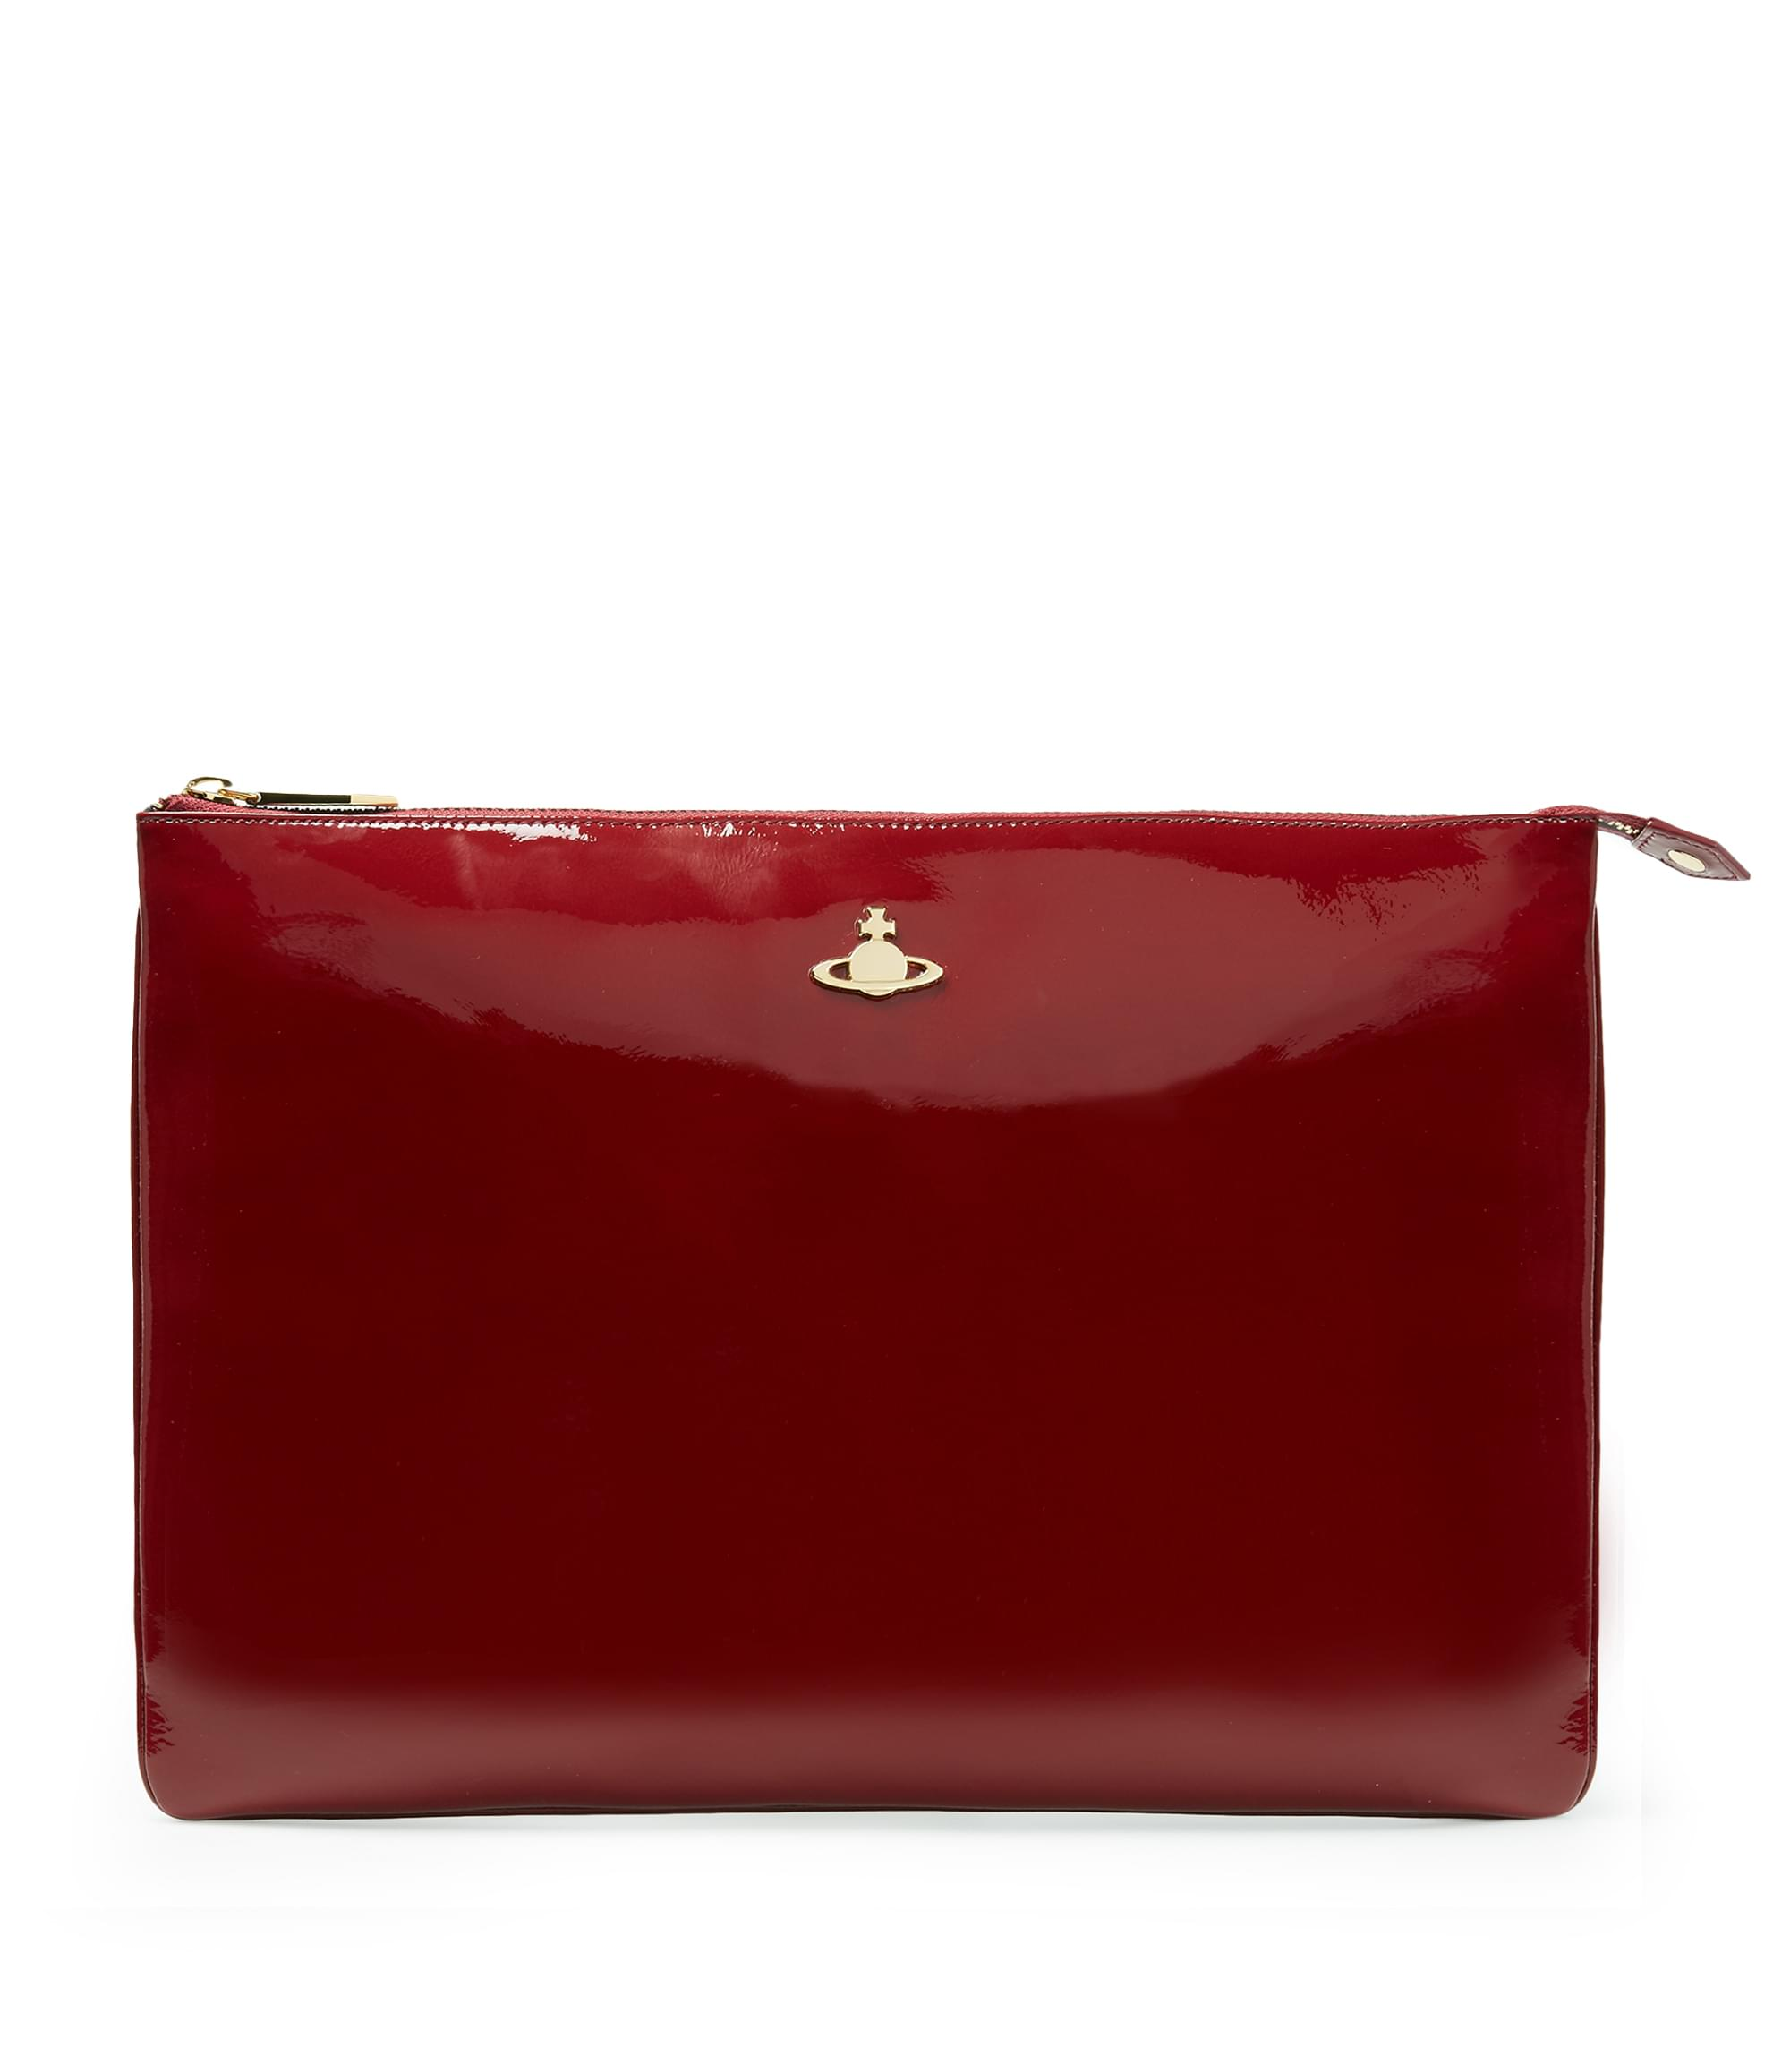 Vivienne Westwood Bordeaux Mirror Ball Clutch Bag 6852